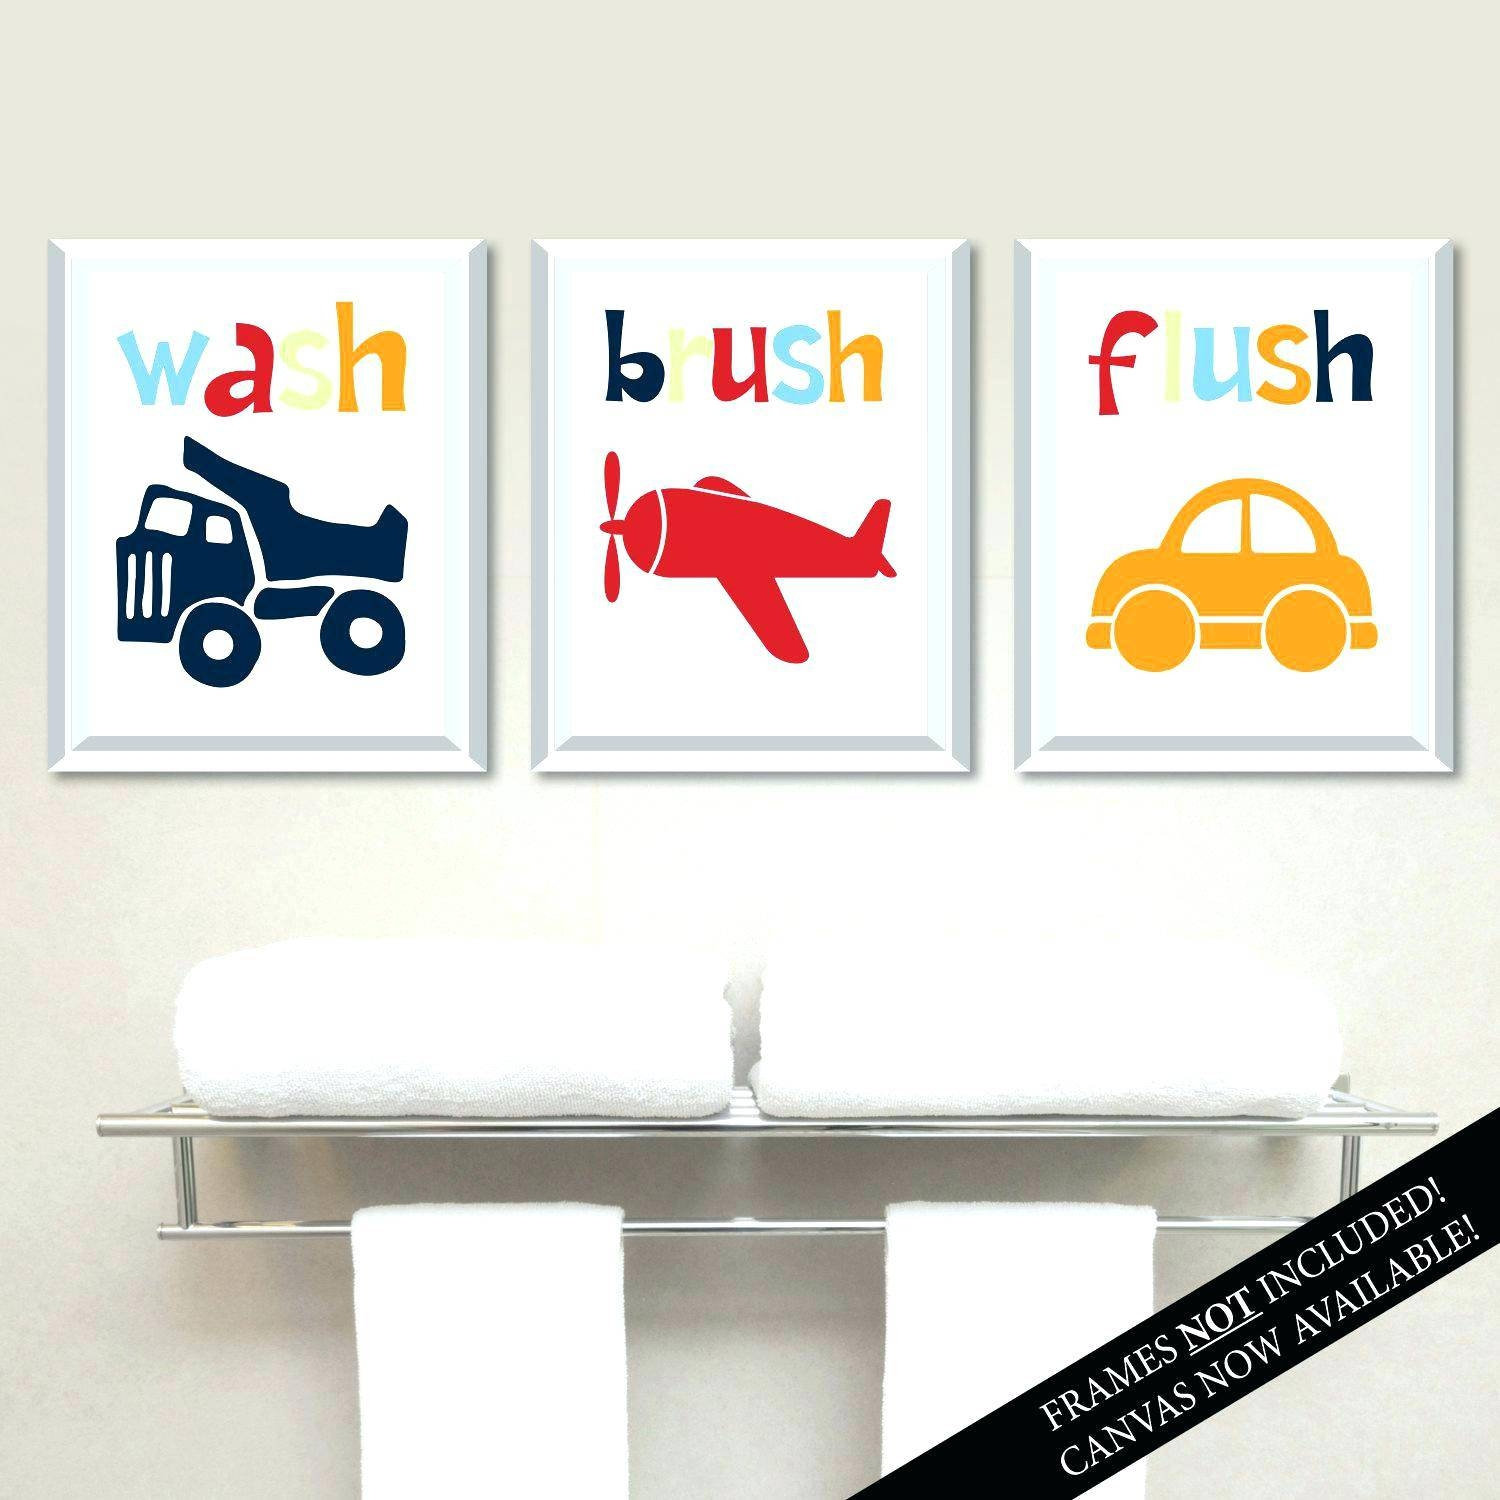 Wall Decals For Kids Bathroom – Gutesleben With Regard To Latest Kids Bathroom Wall Art (View 20 of 20)